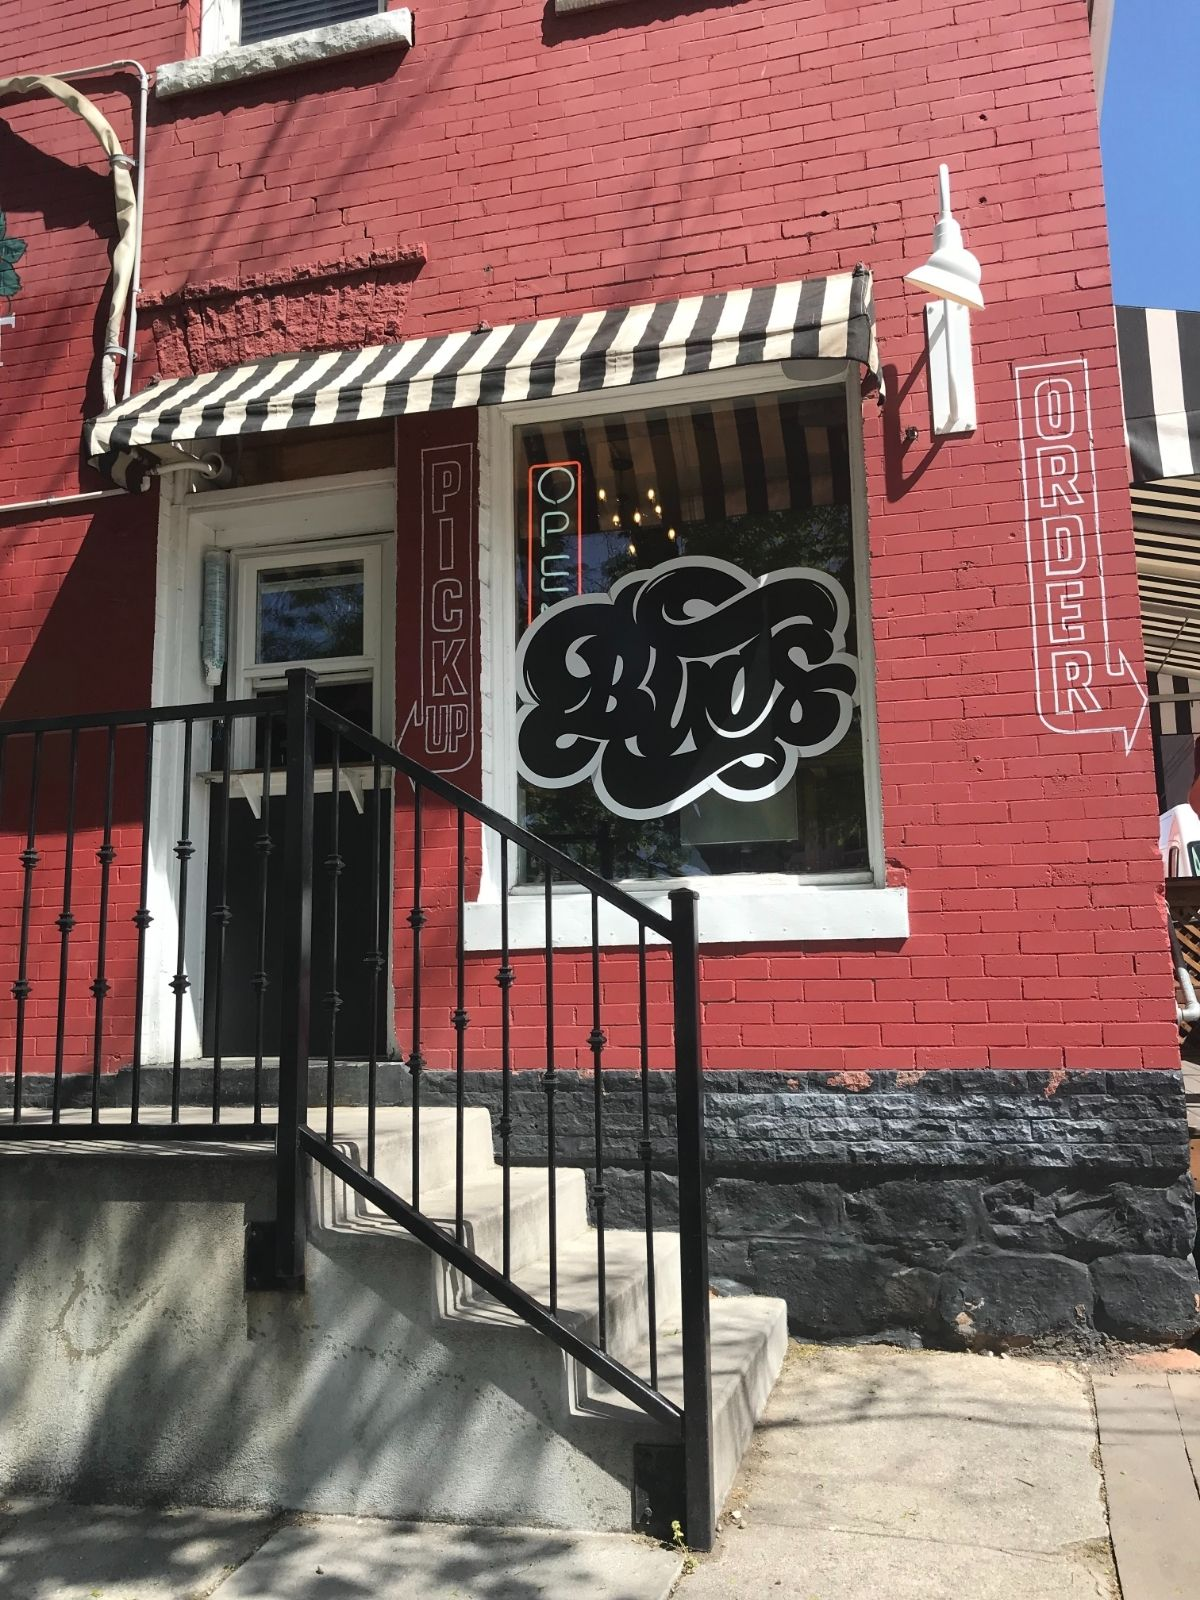 front of buds storefront, red brick, logo on window, steps leading to pickup window